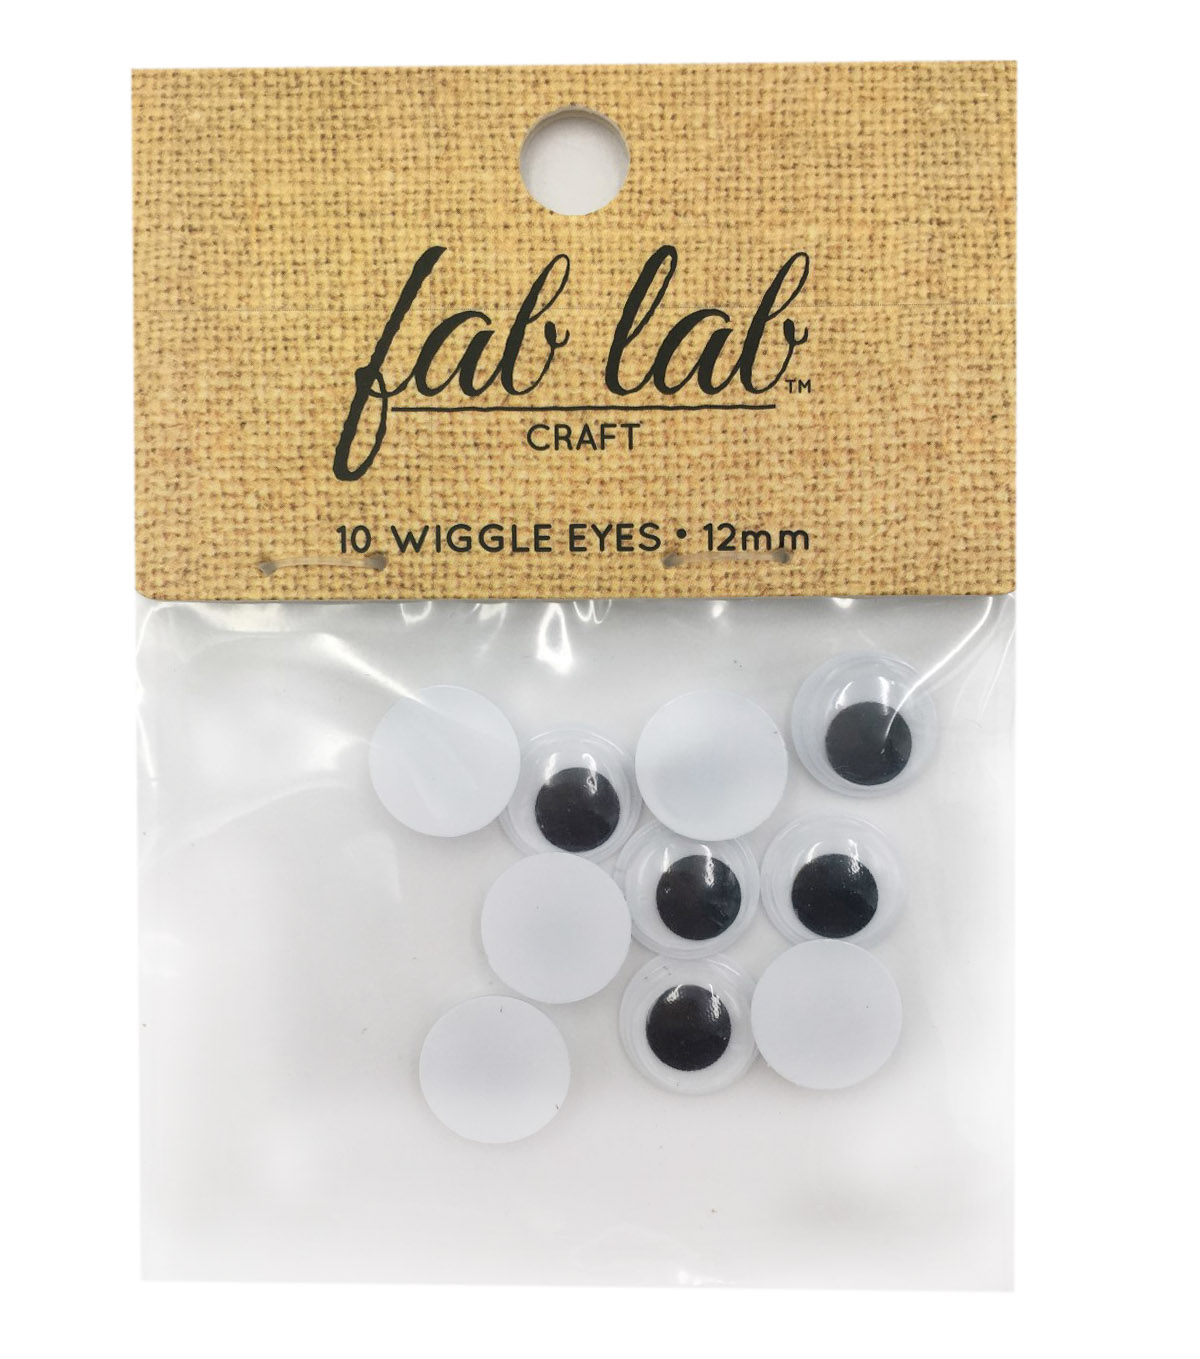 Easyglue Eyes 12mm 10pc